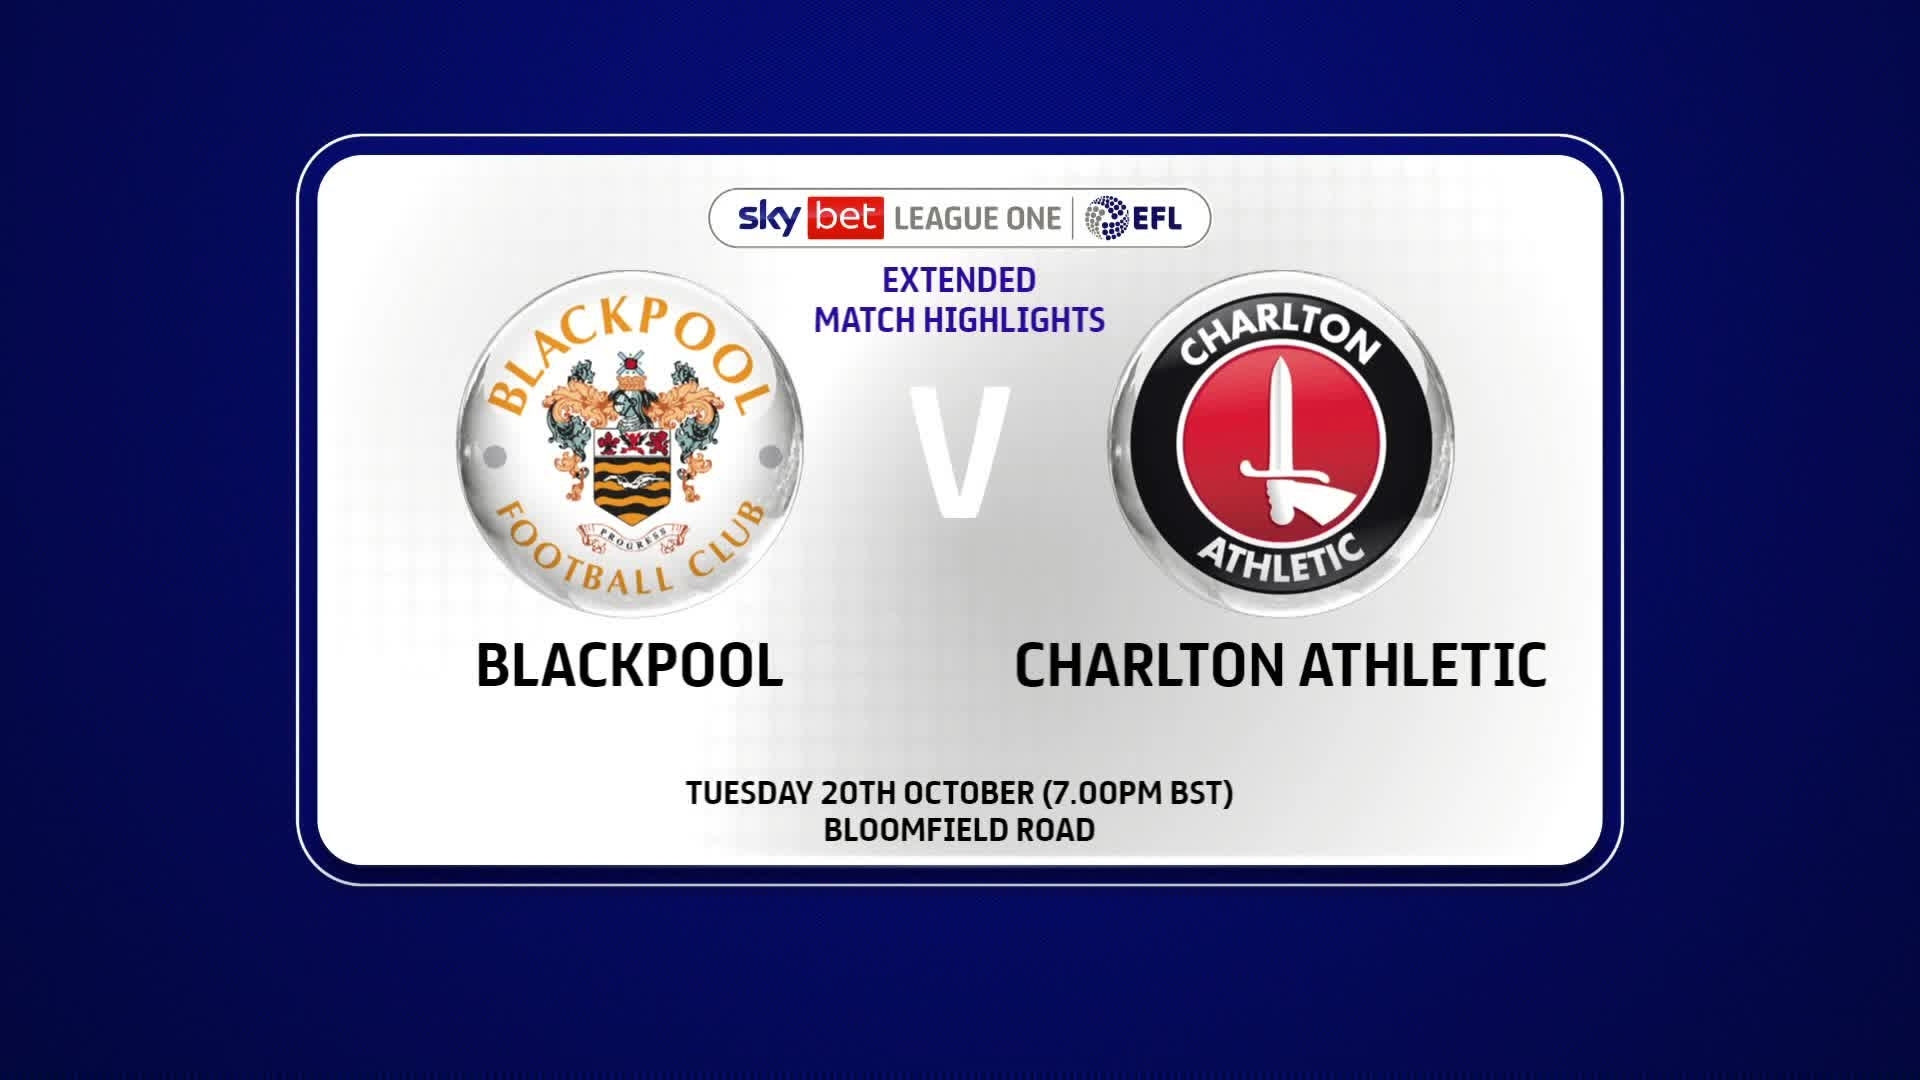 EXTENDED | Blackpool 0 Charlton 1 (October 2020)